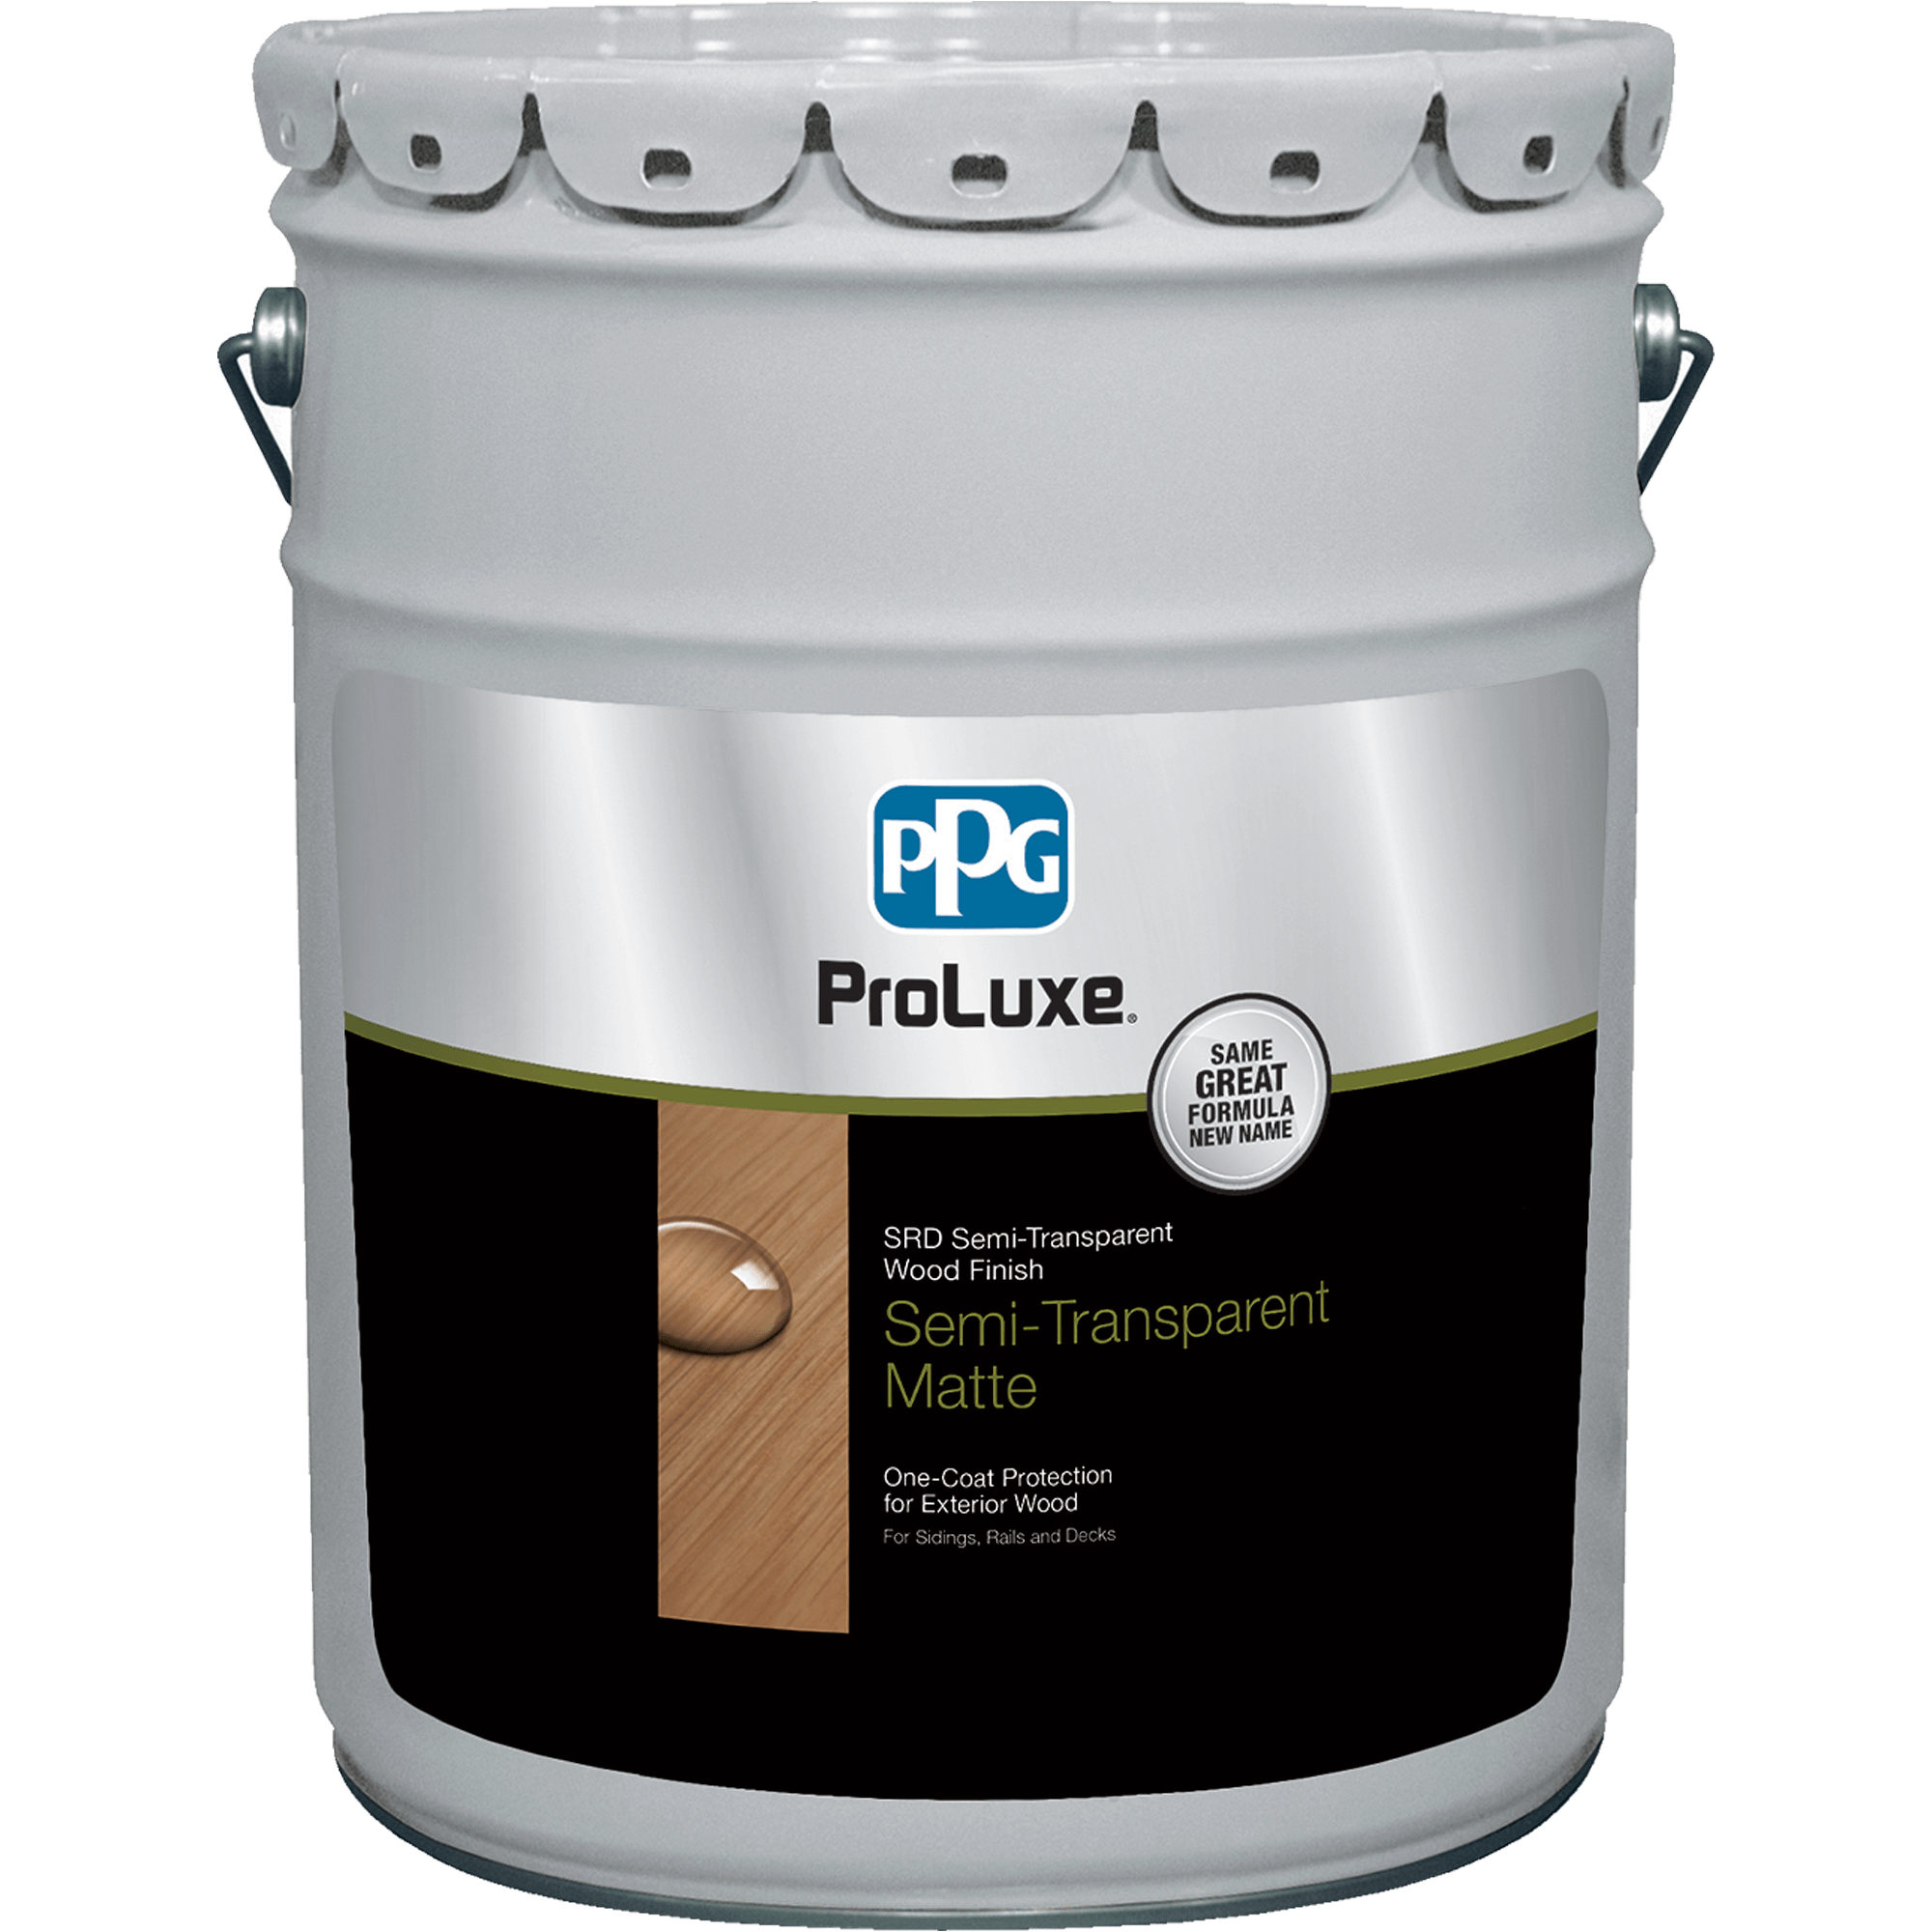 PROLUXE<sup>®</sup> SRD Semi-Transparent Wood Finish 5 gallon